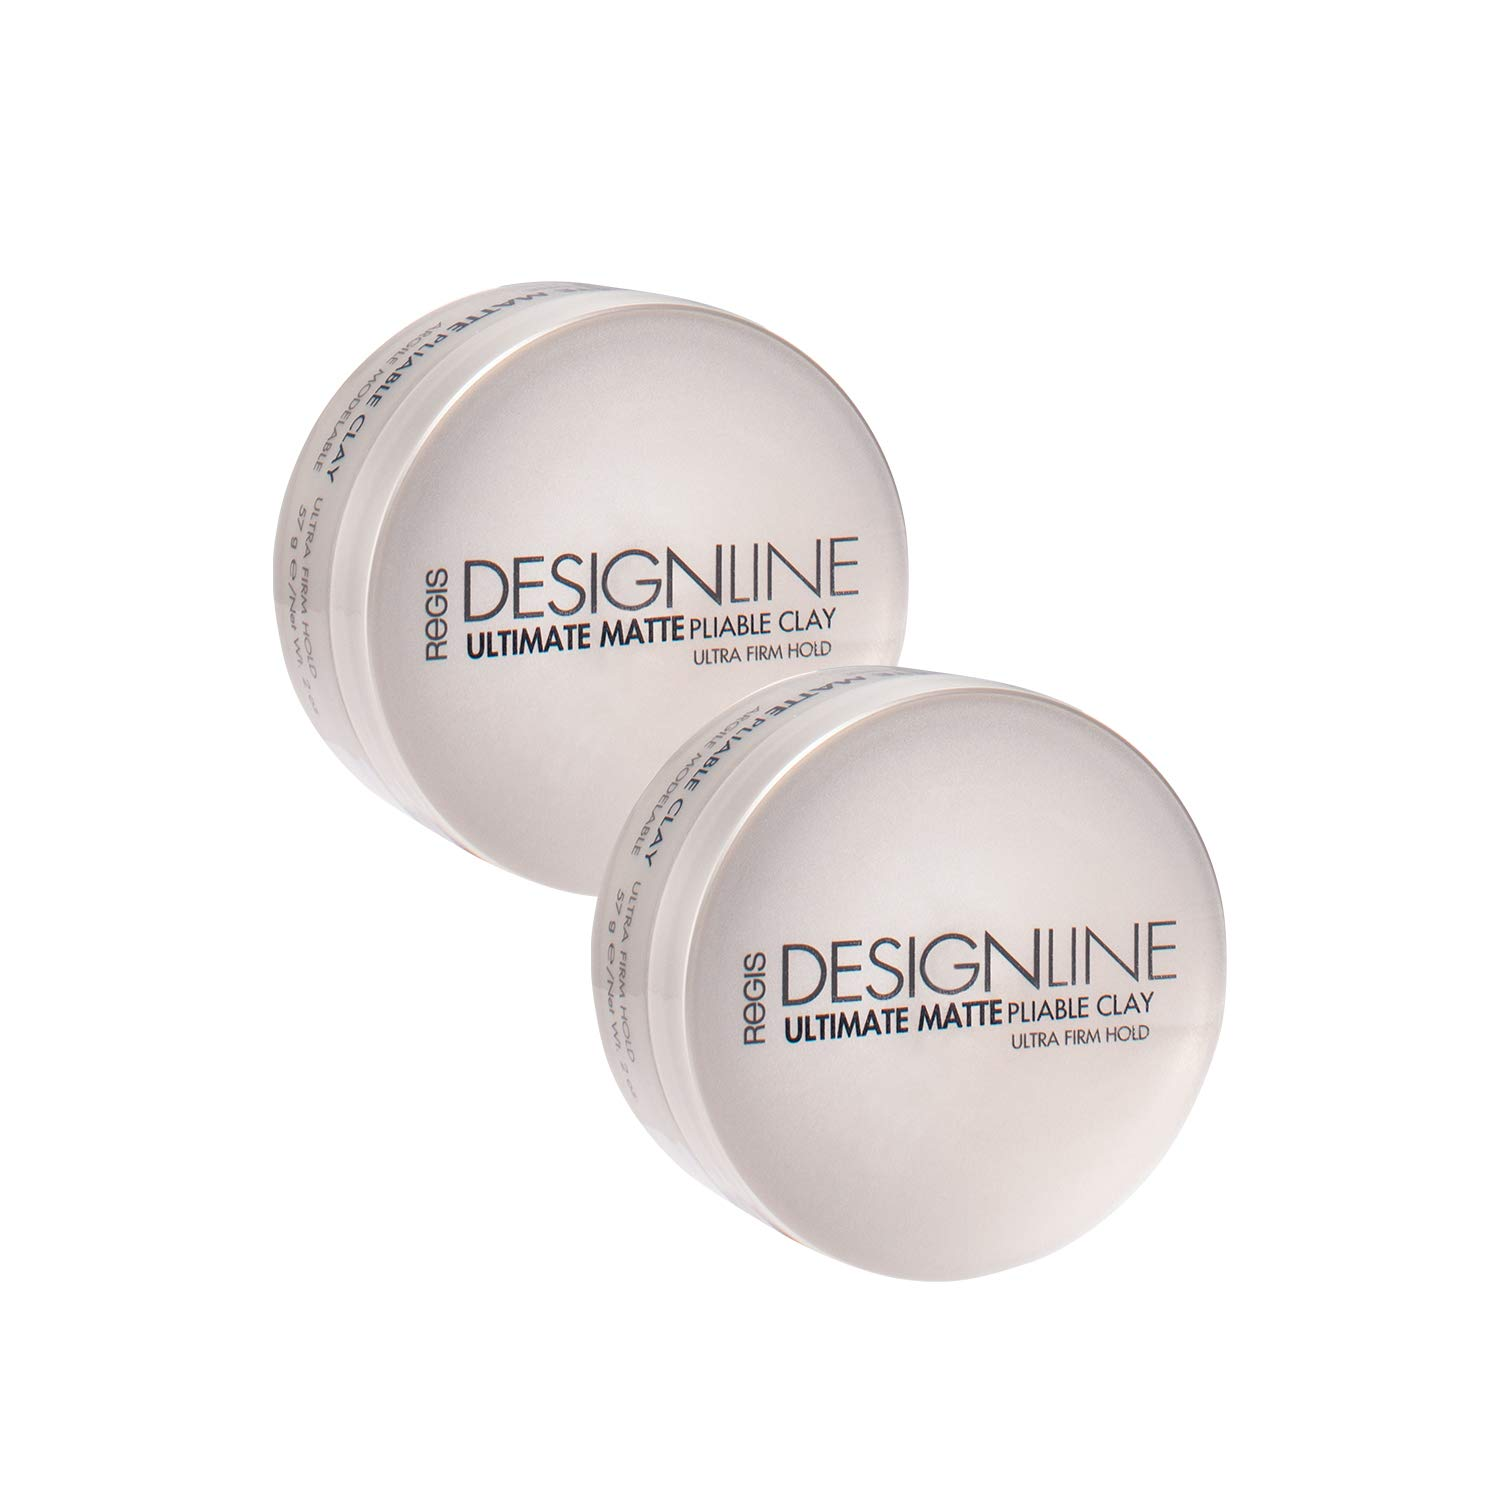 Ultimate Matte Pliable Clay, 2 Pack - Regis DESIGNLINE - Provides Serious Texture, Movement, and Definition with a Flexible Hold for All Hair Styles by DESIGNLINE